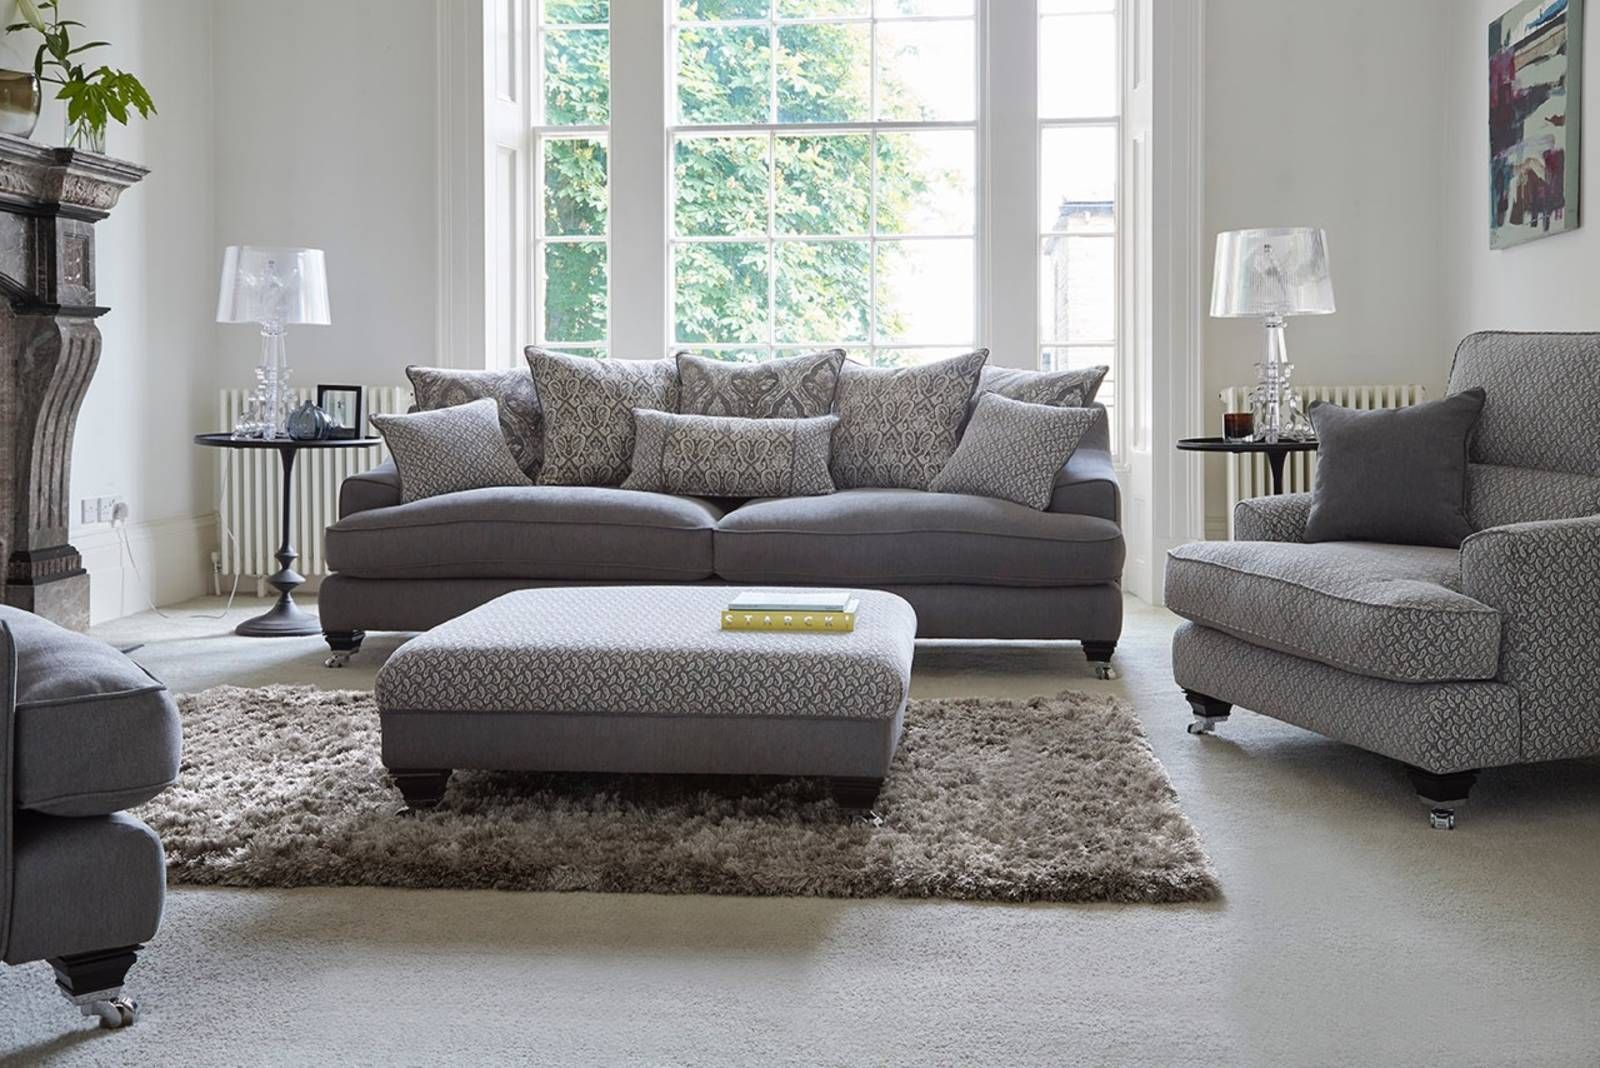 Sofology Online Support Bergen Sofology Sofa Sofa Cushions On Sofa Sofa Styling